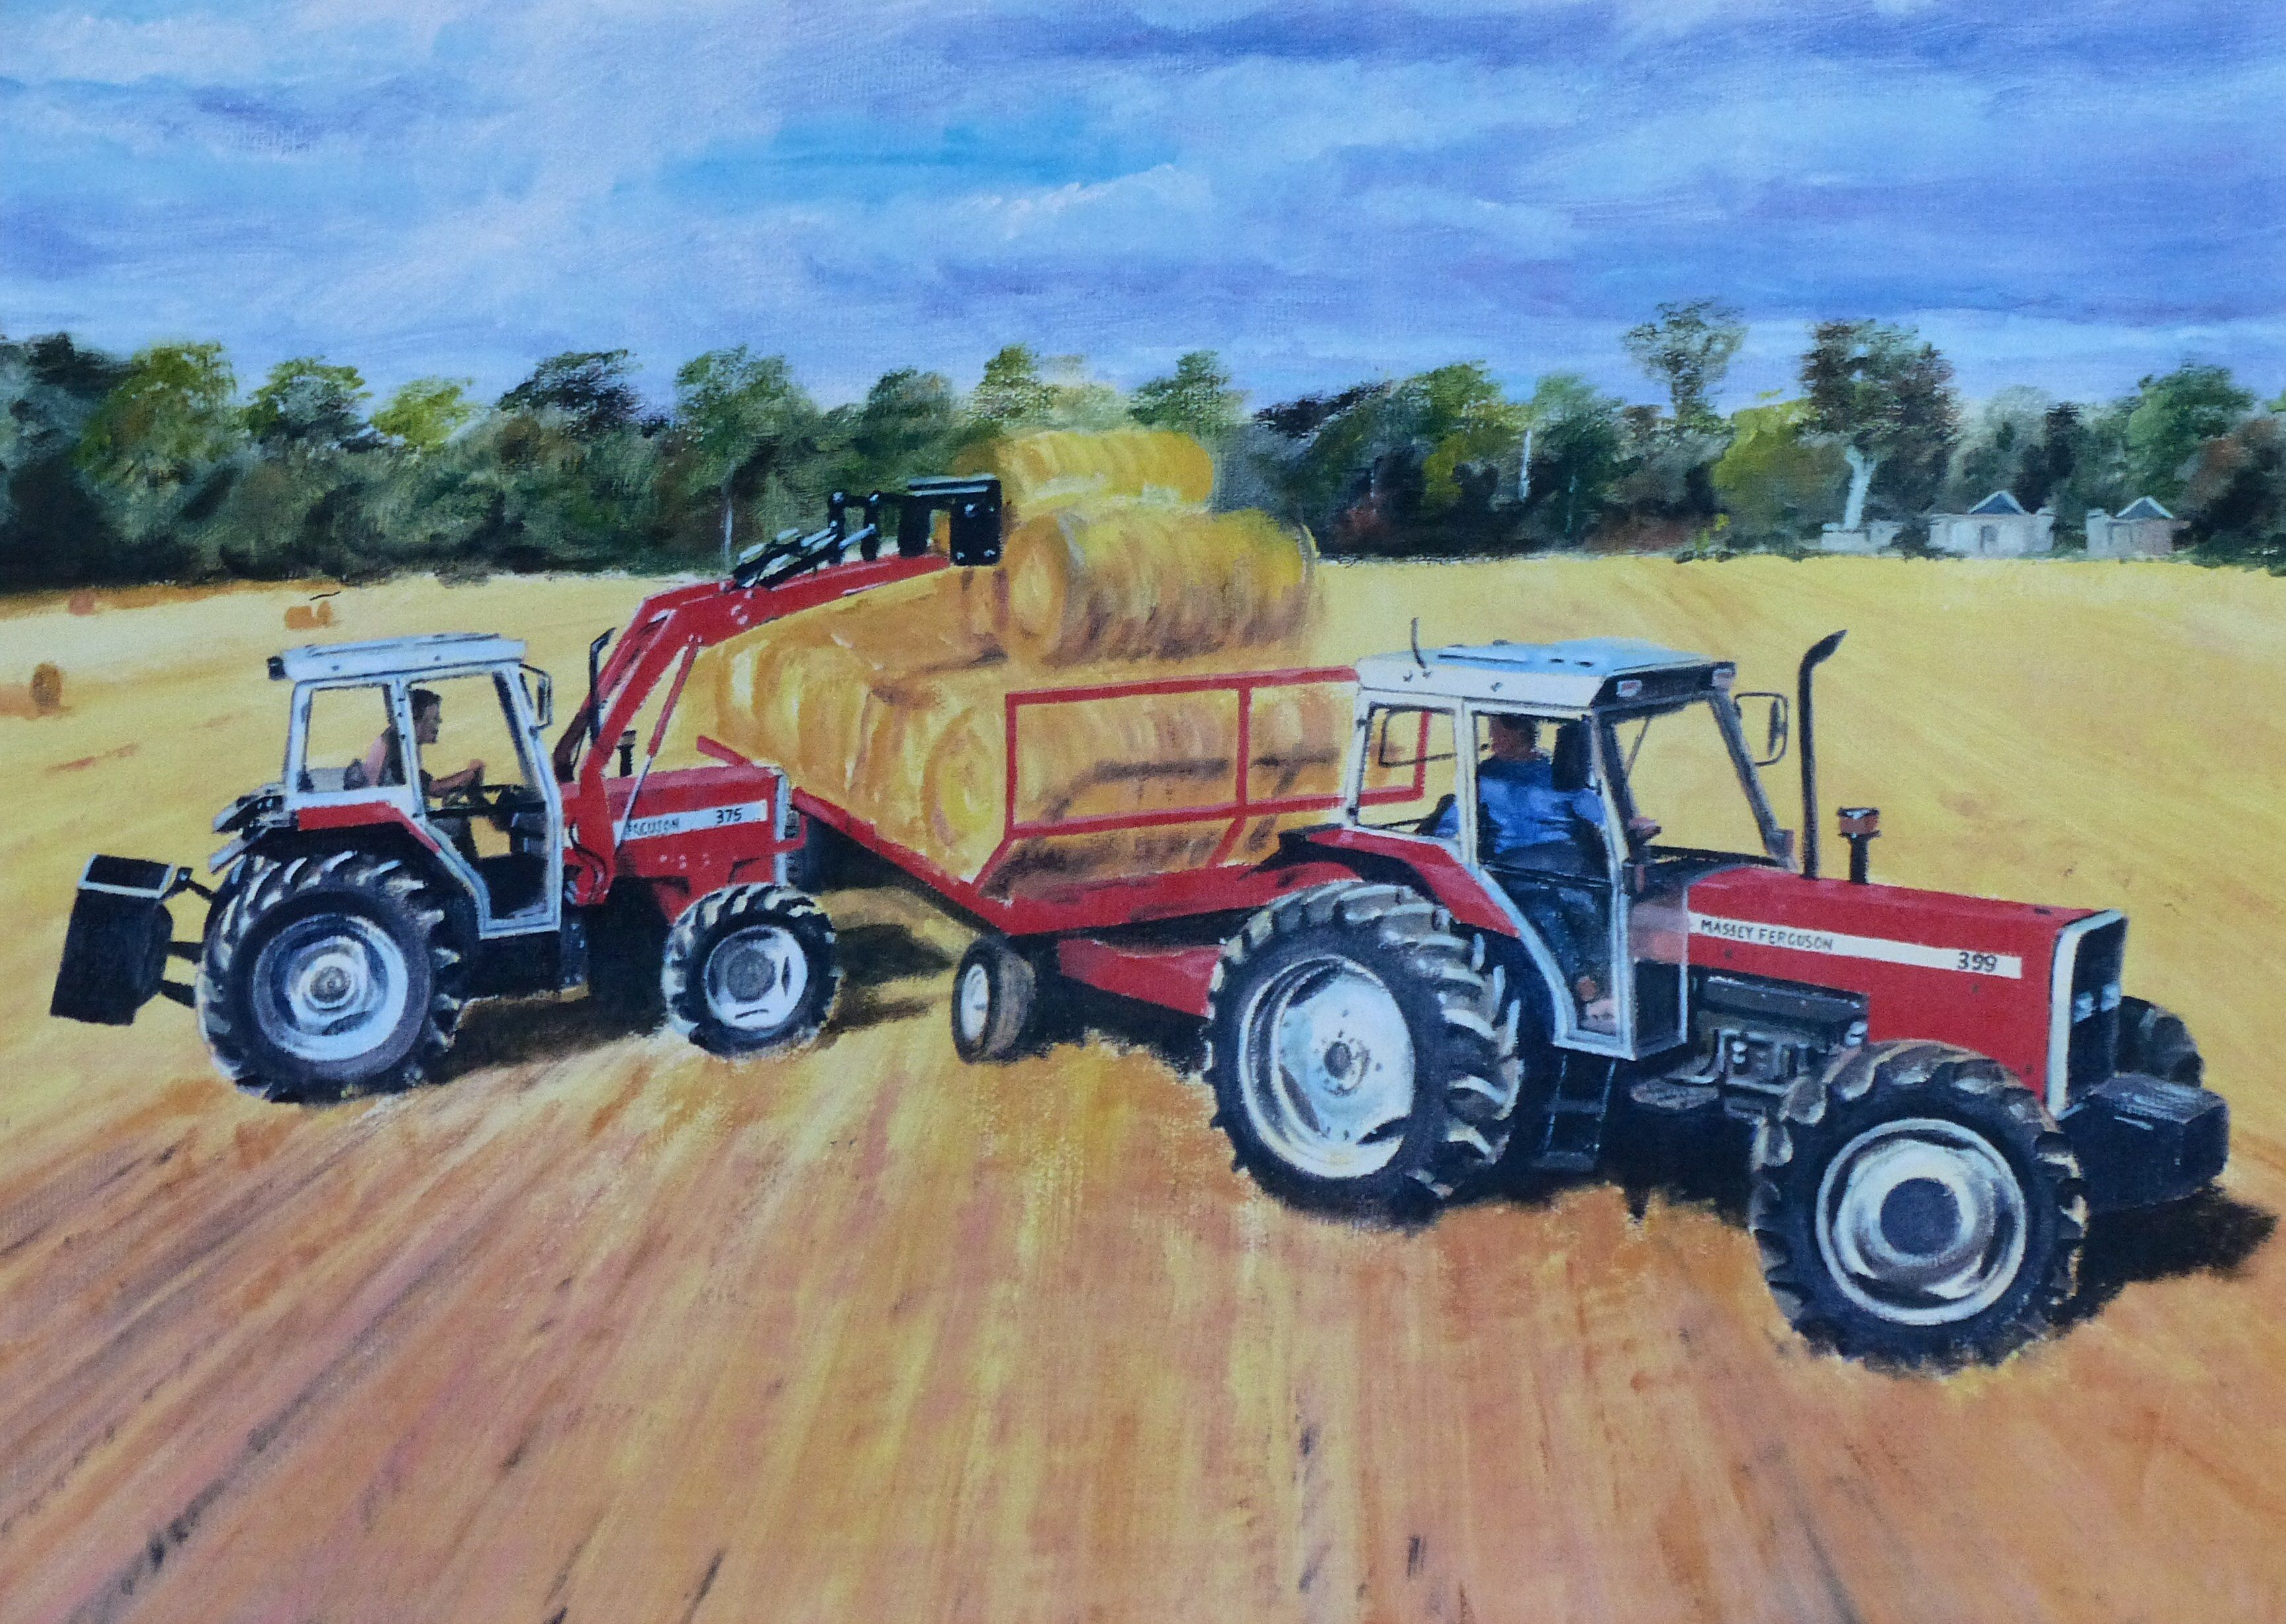 Original oil painting by Barrie Cann #oil #painting #tractor #farm #art #Barrie #Cann #barriecann #harvest